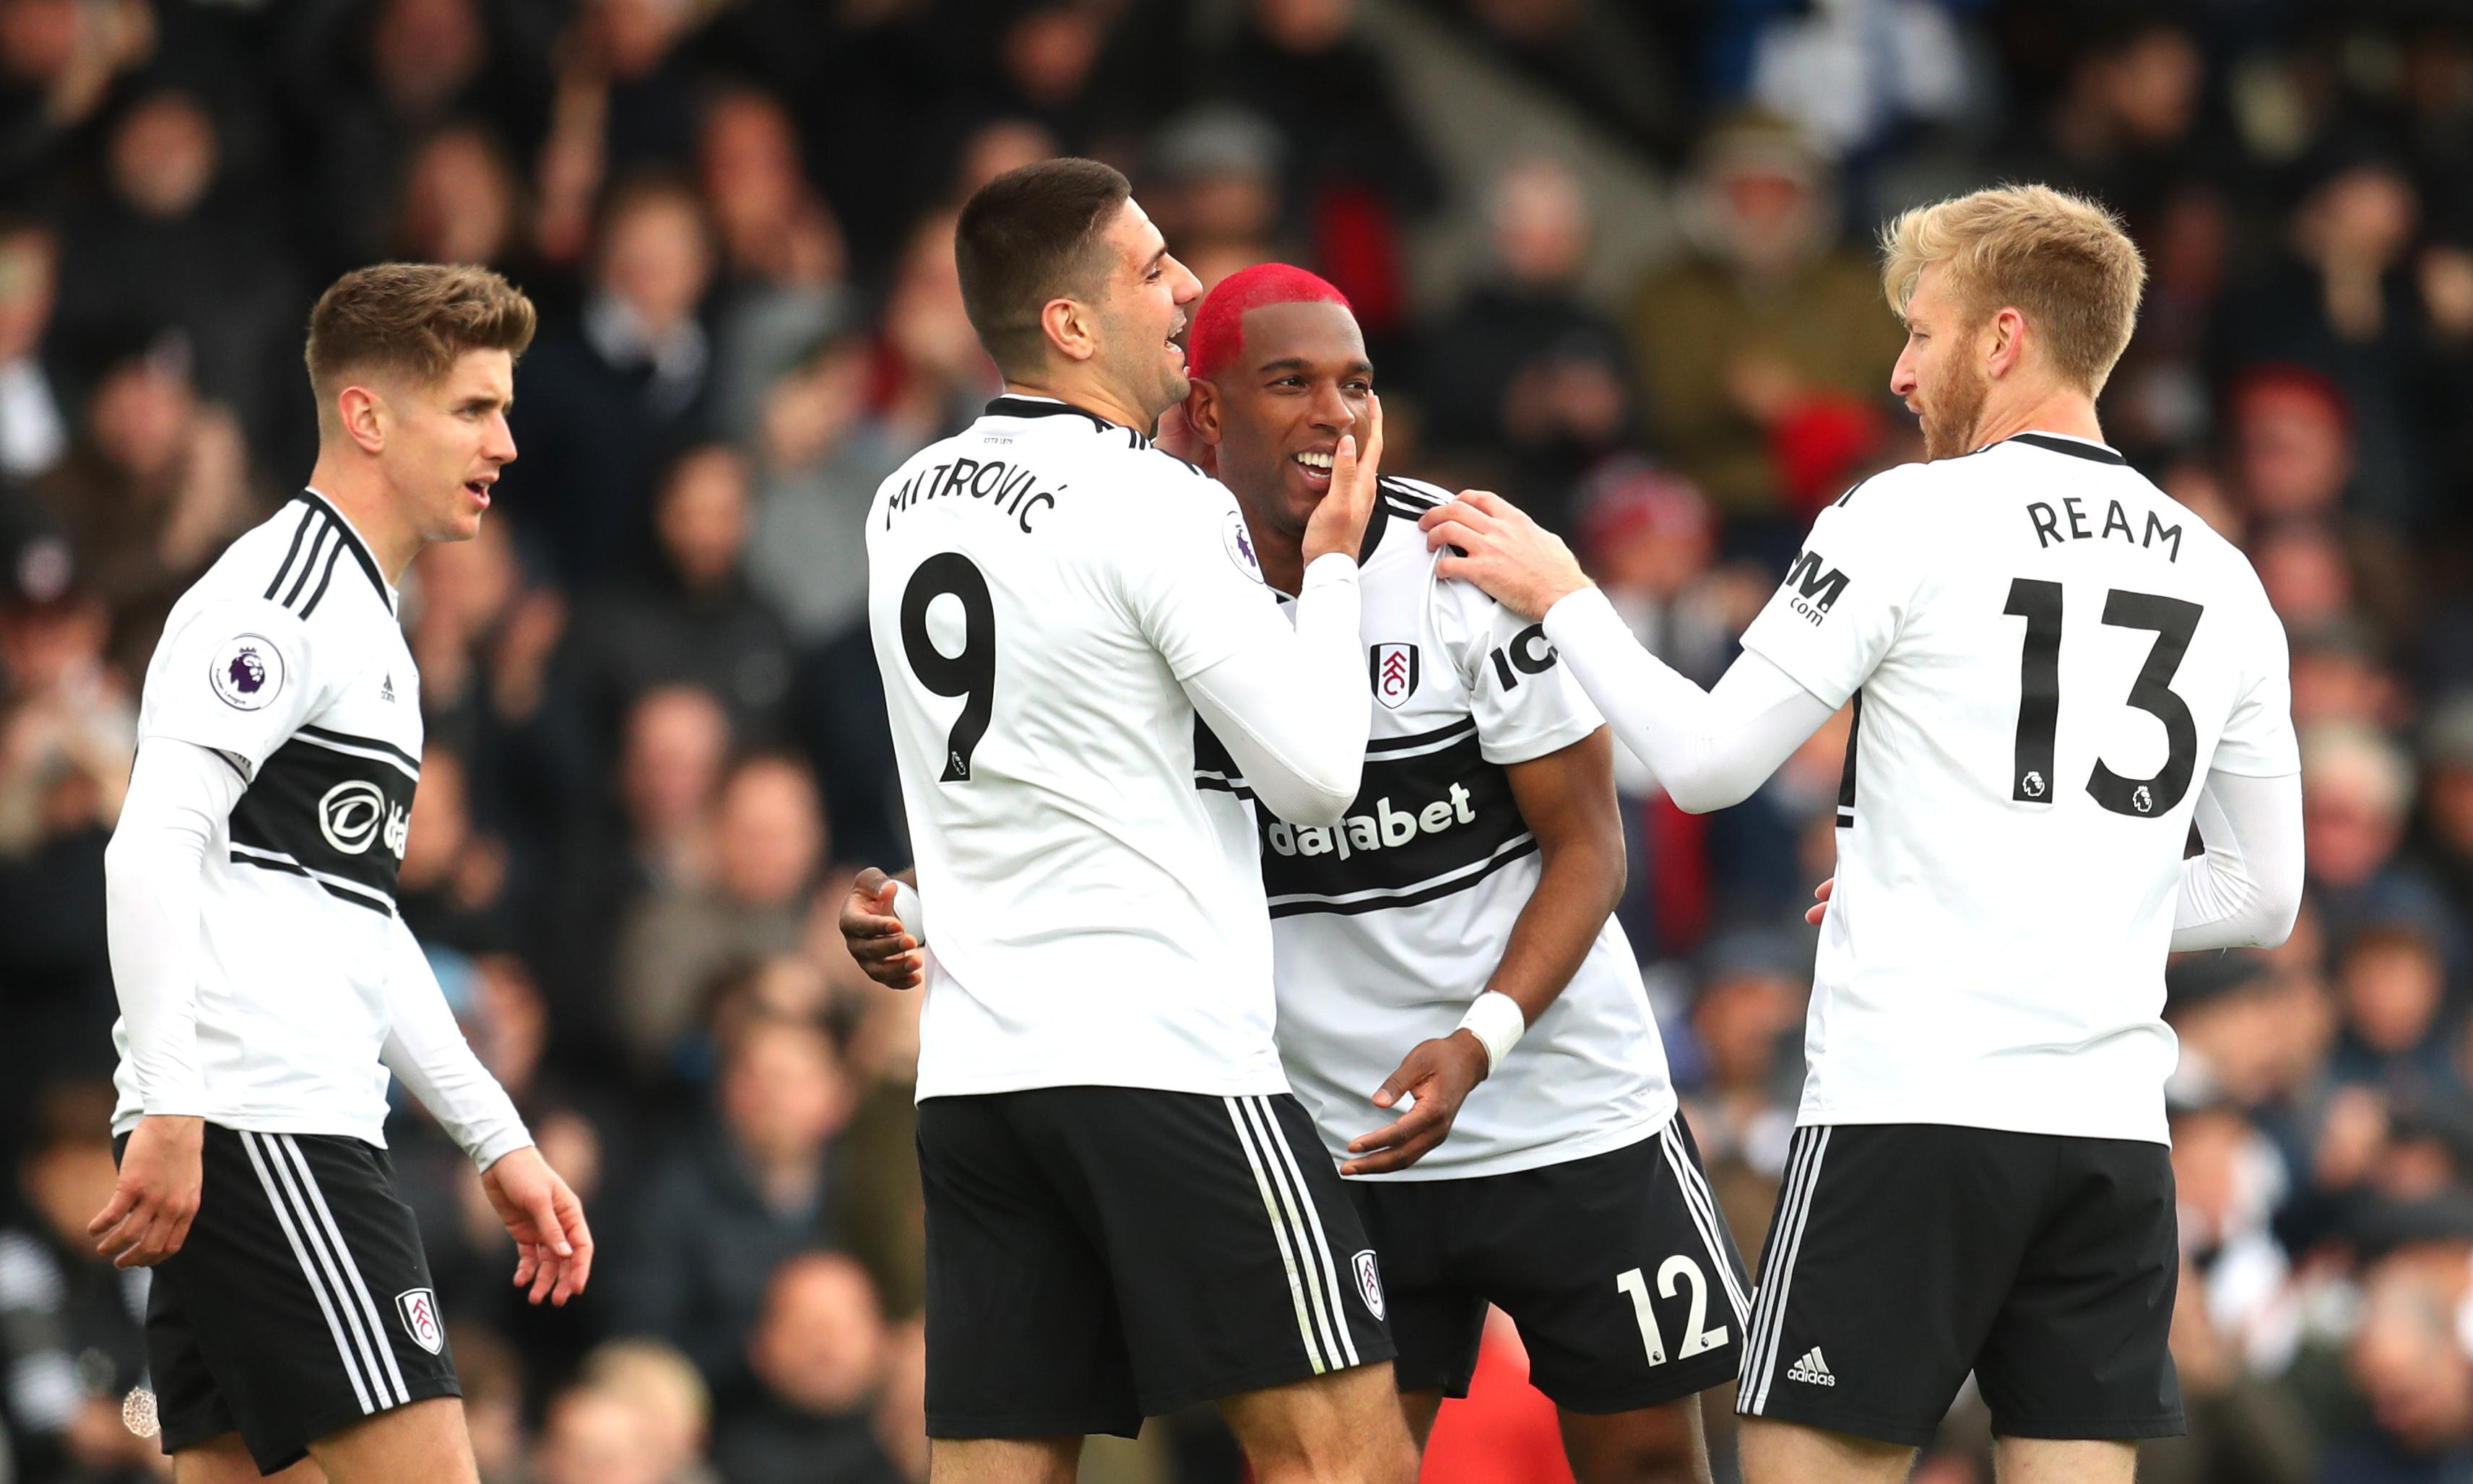 Ryan Babel's late winner for Fulham leaves Cardiff on brink of relegation